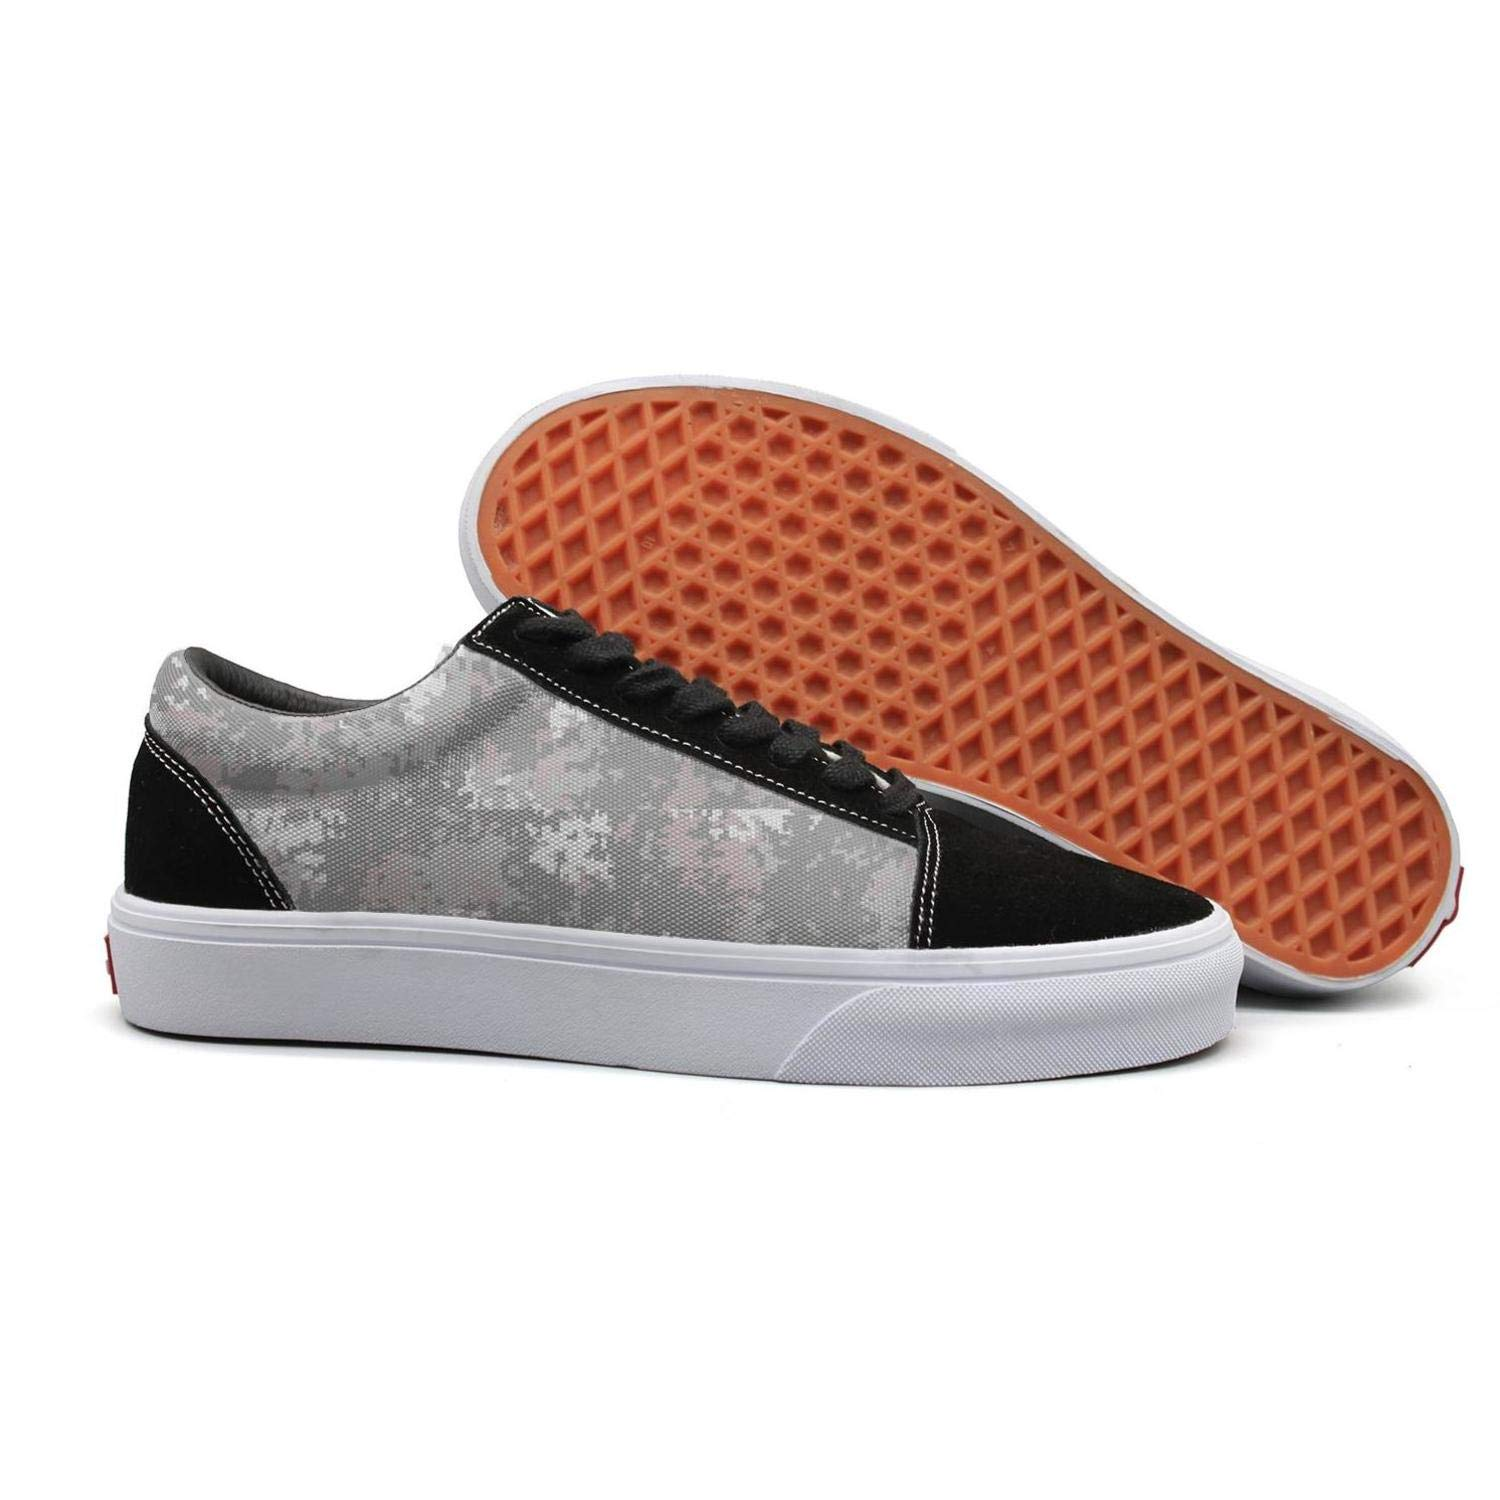 Silver Camo Desert 5.5 B(M) US Uieort Silver camo Desert Womens Lace up Canvas shoes Casual